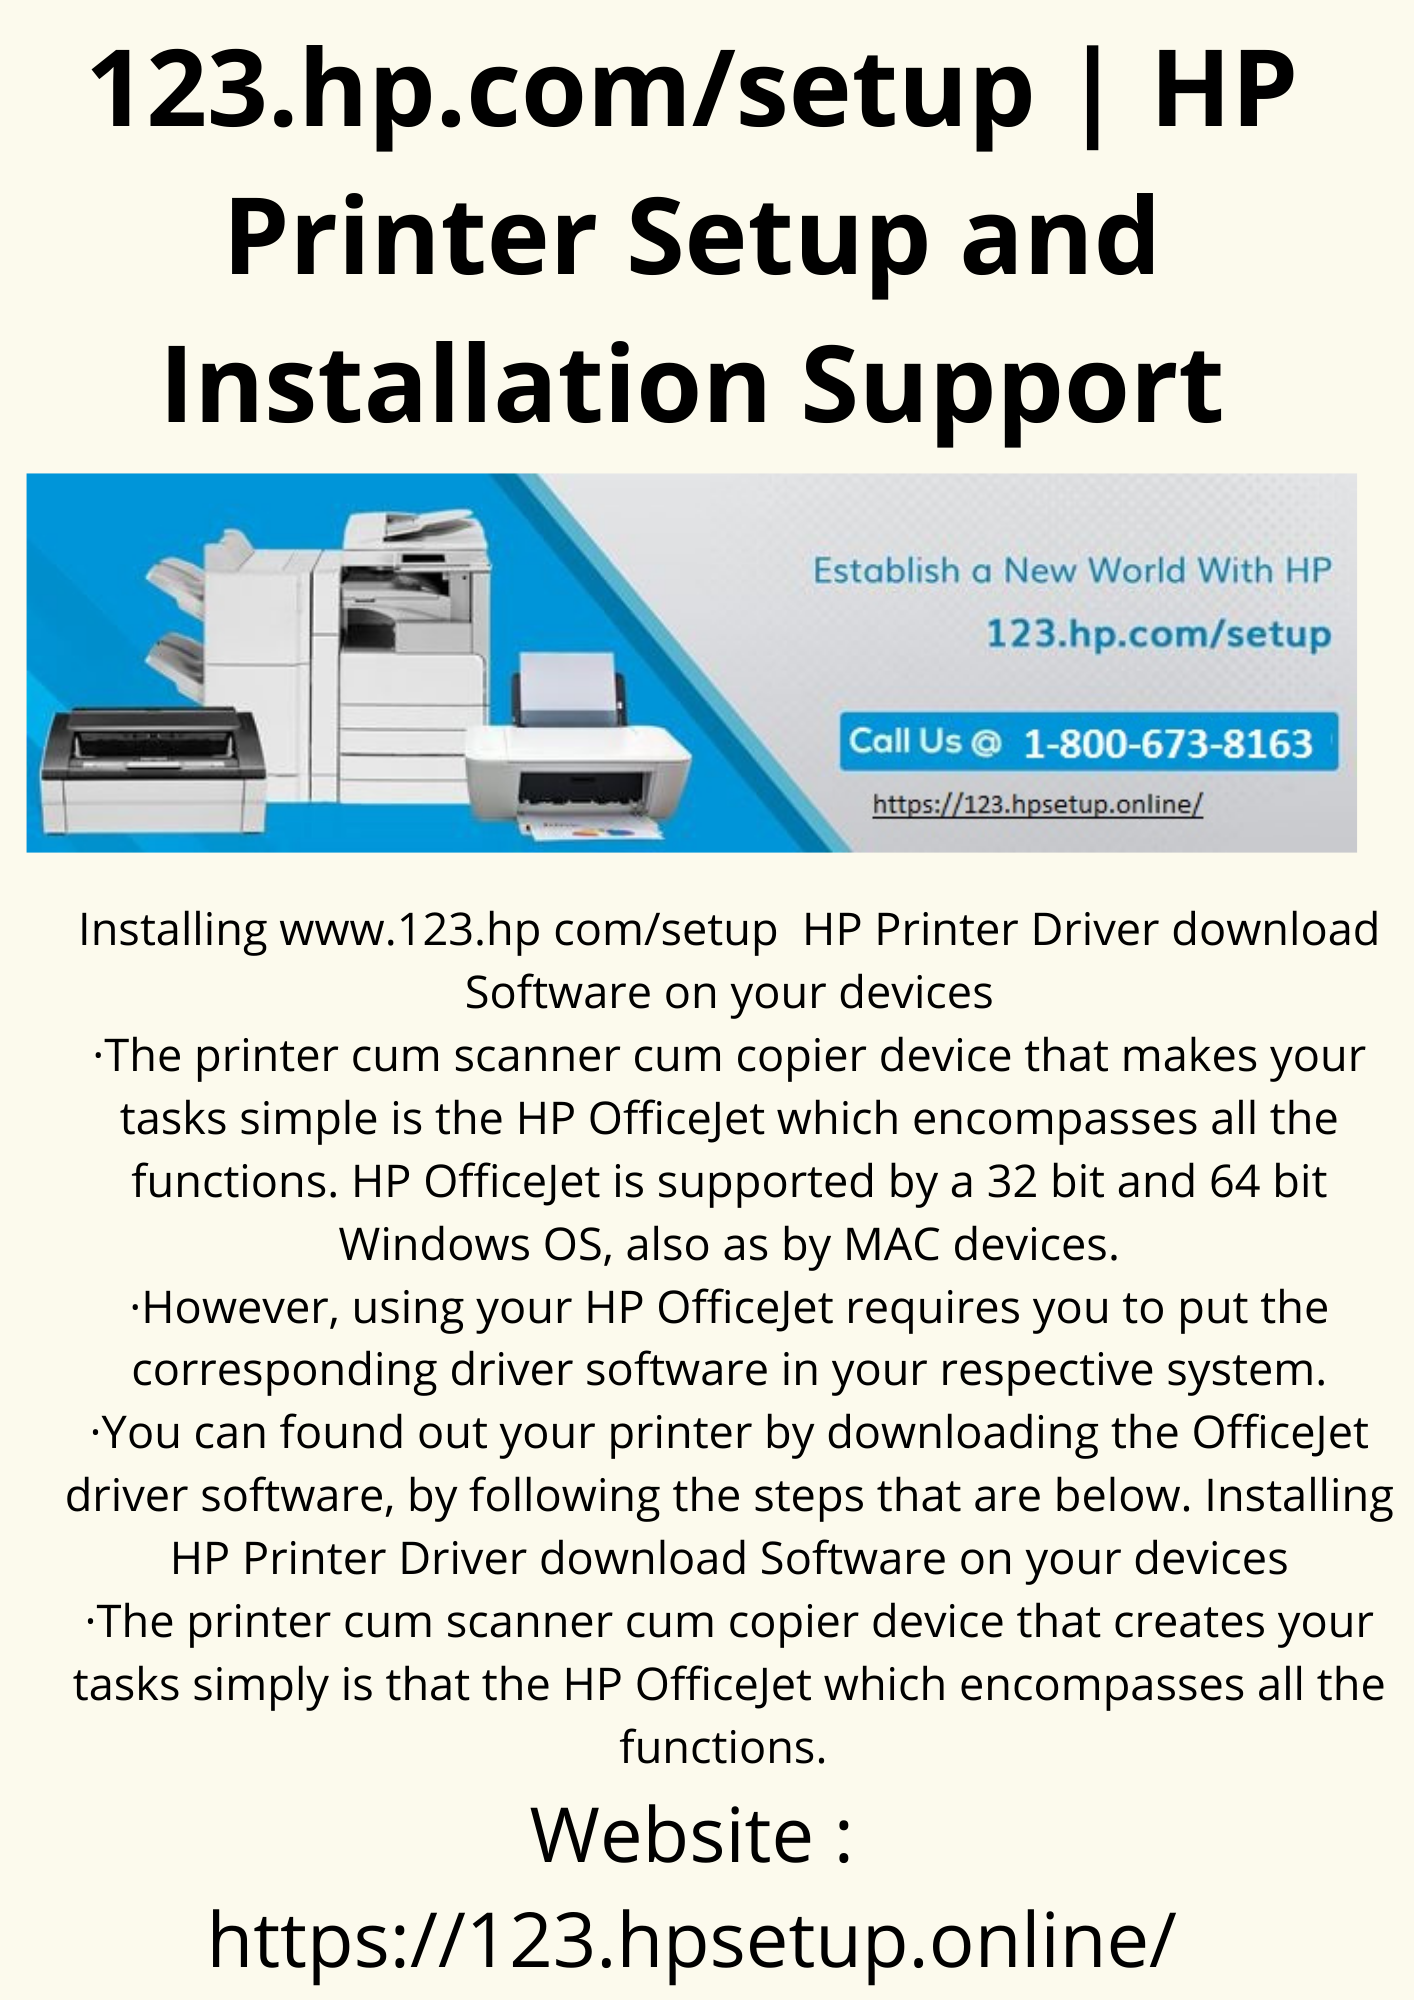 123.hp.comsetup HP Printer Setup and Installation Support